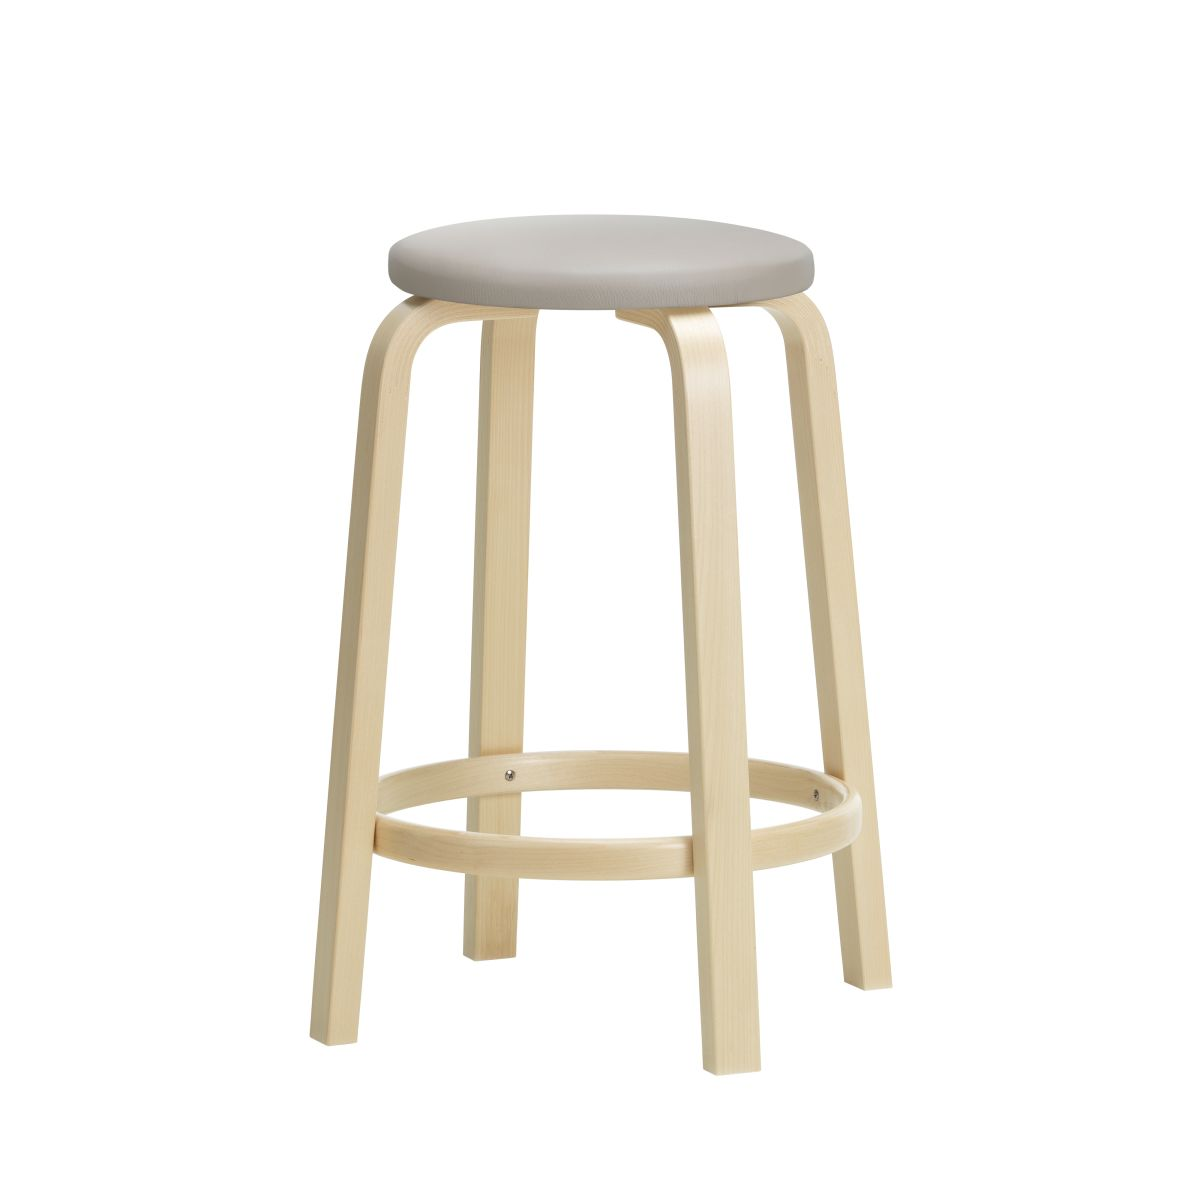 Bar-Stool-64-65cm-natural_-upholstery-Sörensen-Prestigue-beige-padding_F-2912674